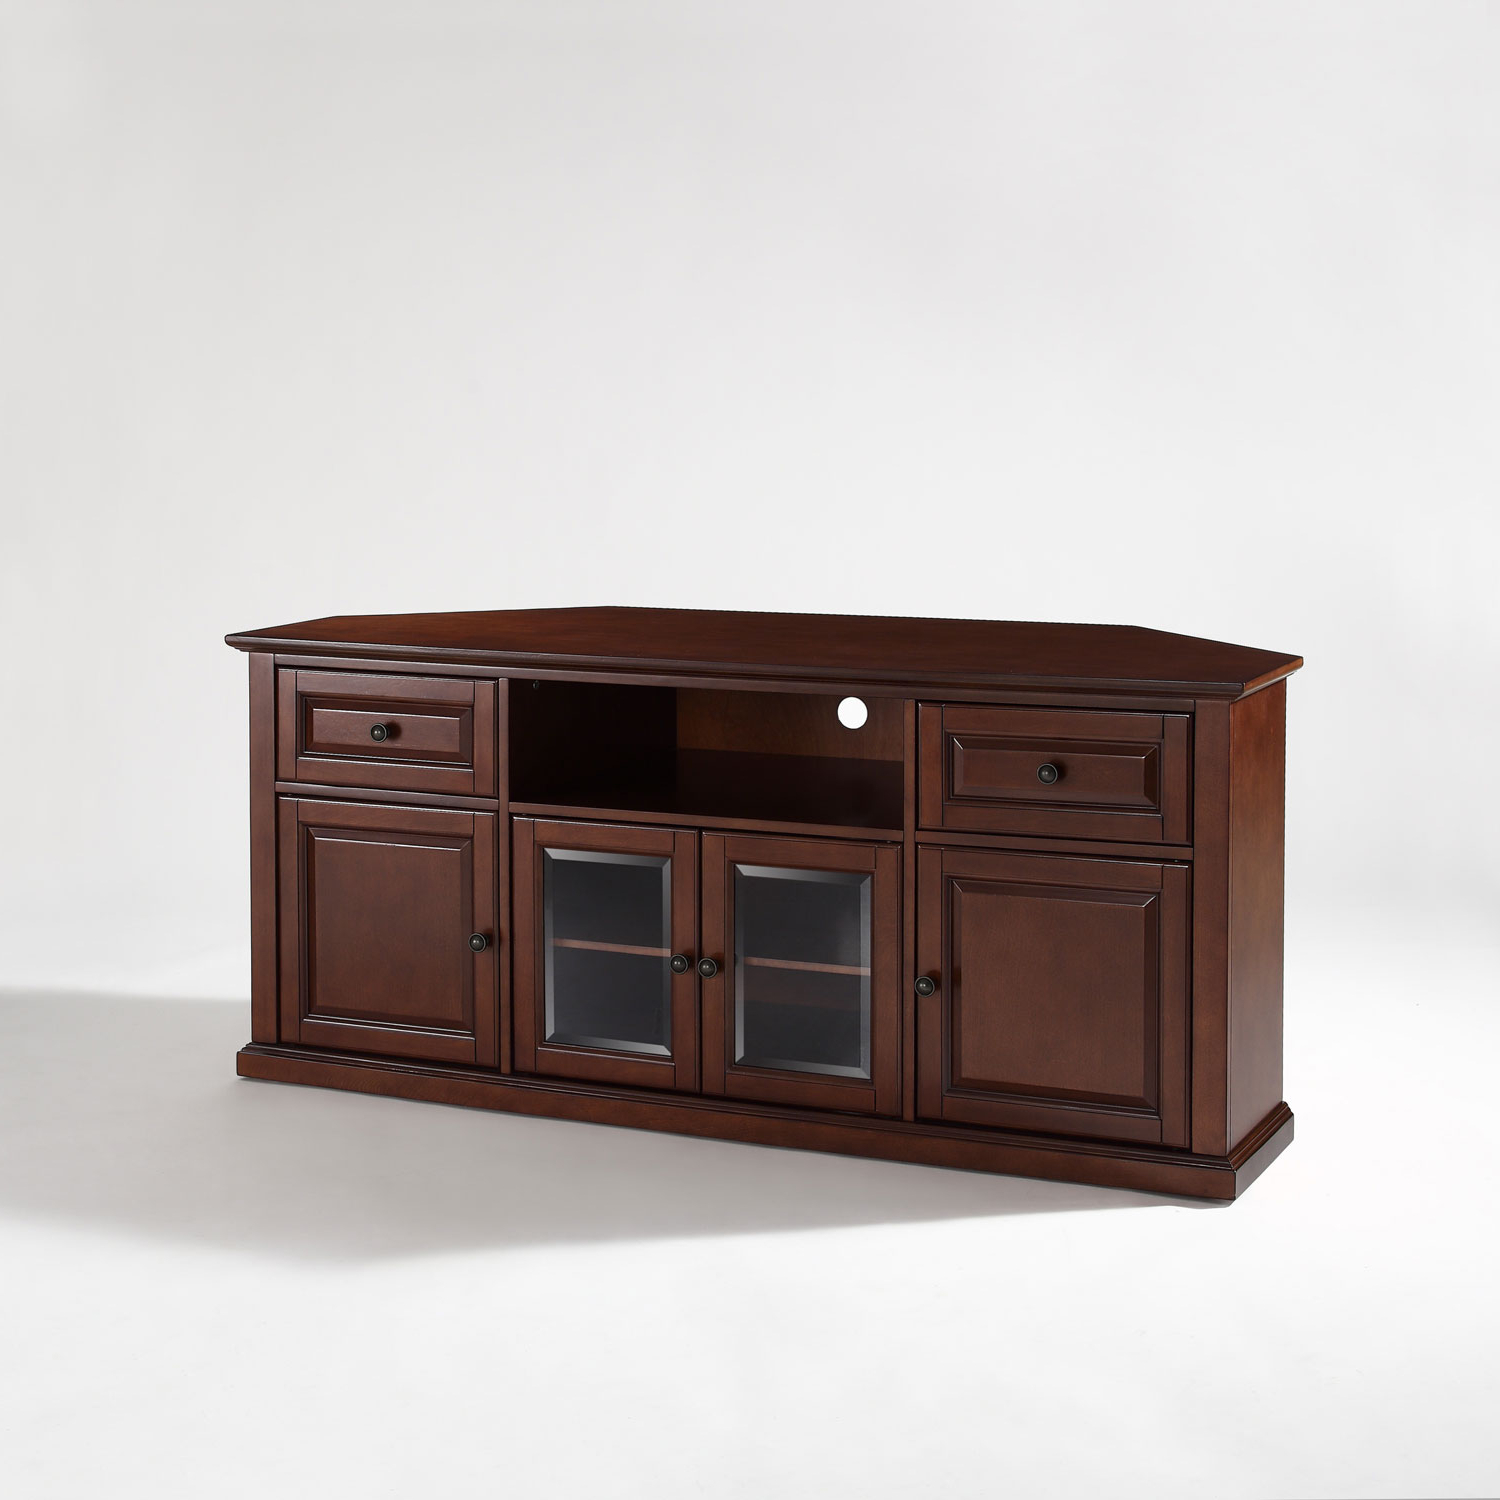 Most Recently Released Corner Tv Stand In Crosley Furniture Inch Vintage Mahogany Plans Throughout Tv Stands And Cabinets (View 16 of 20)